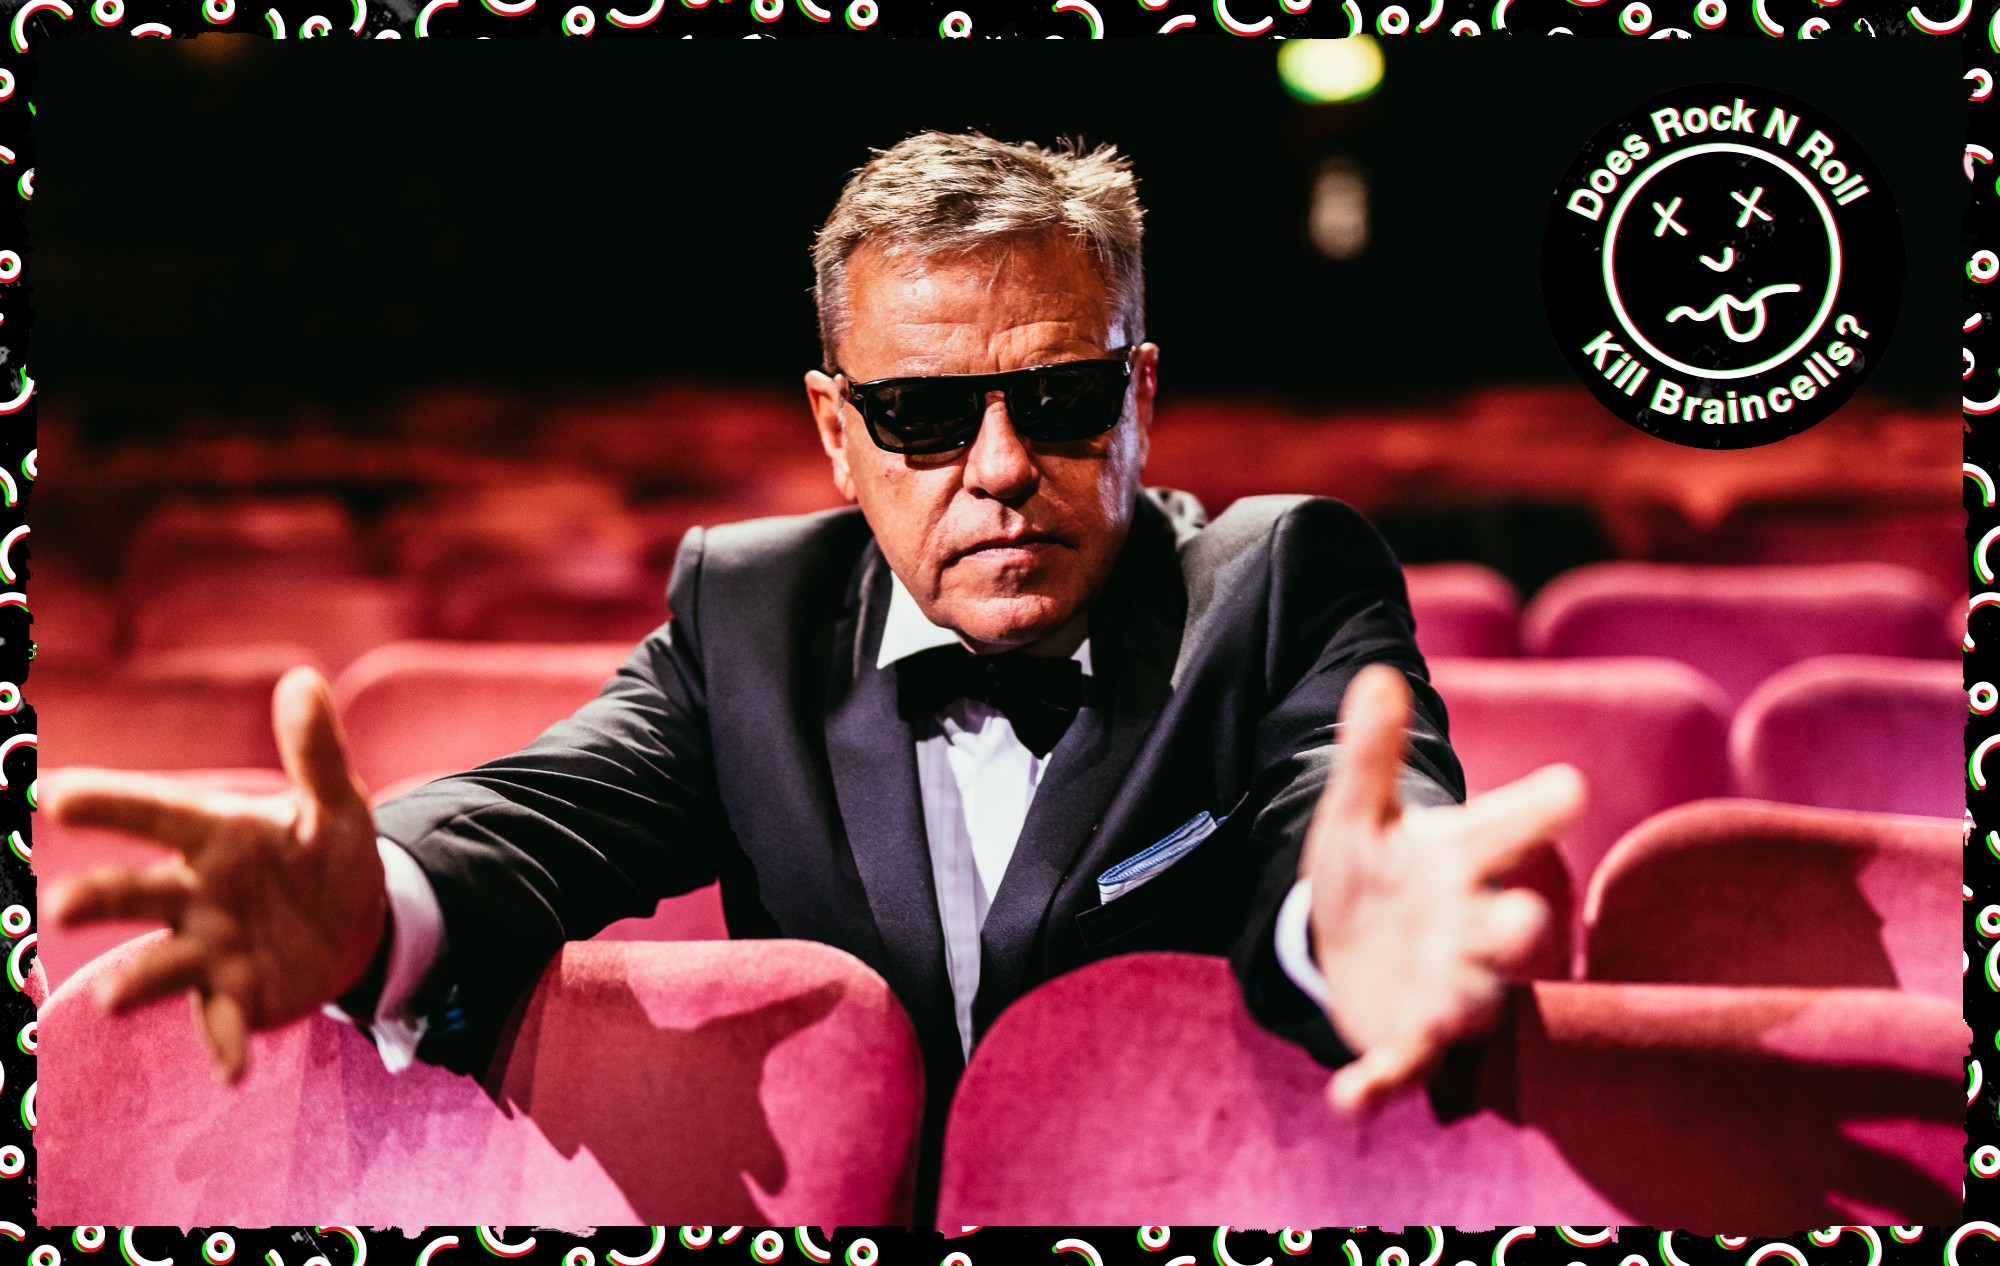 Does Rock 'N' Roll Kill Braincells?! - Madness Suggs Askhiphop interview